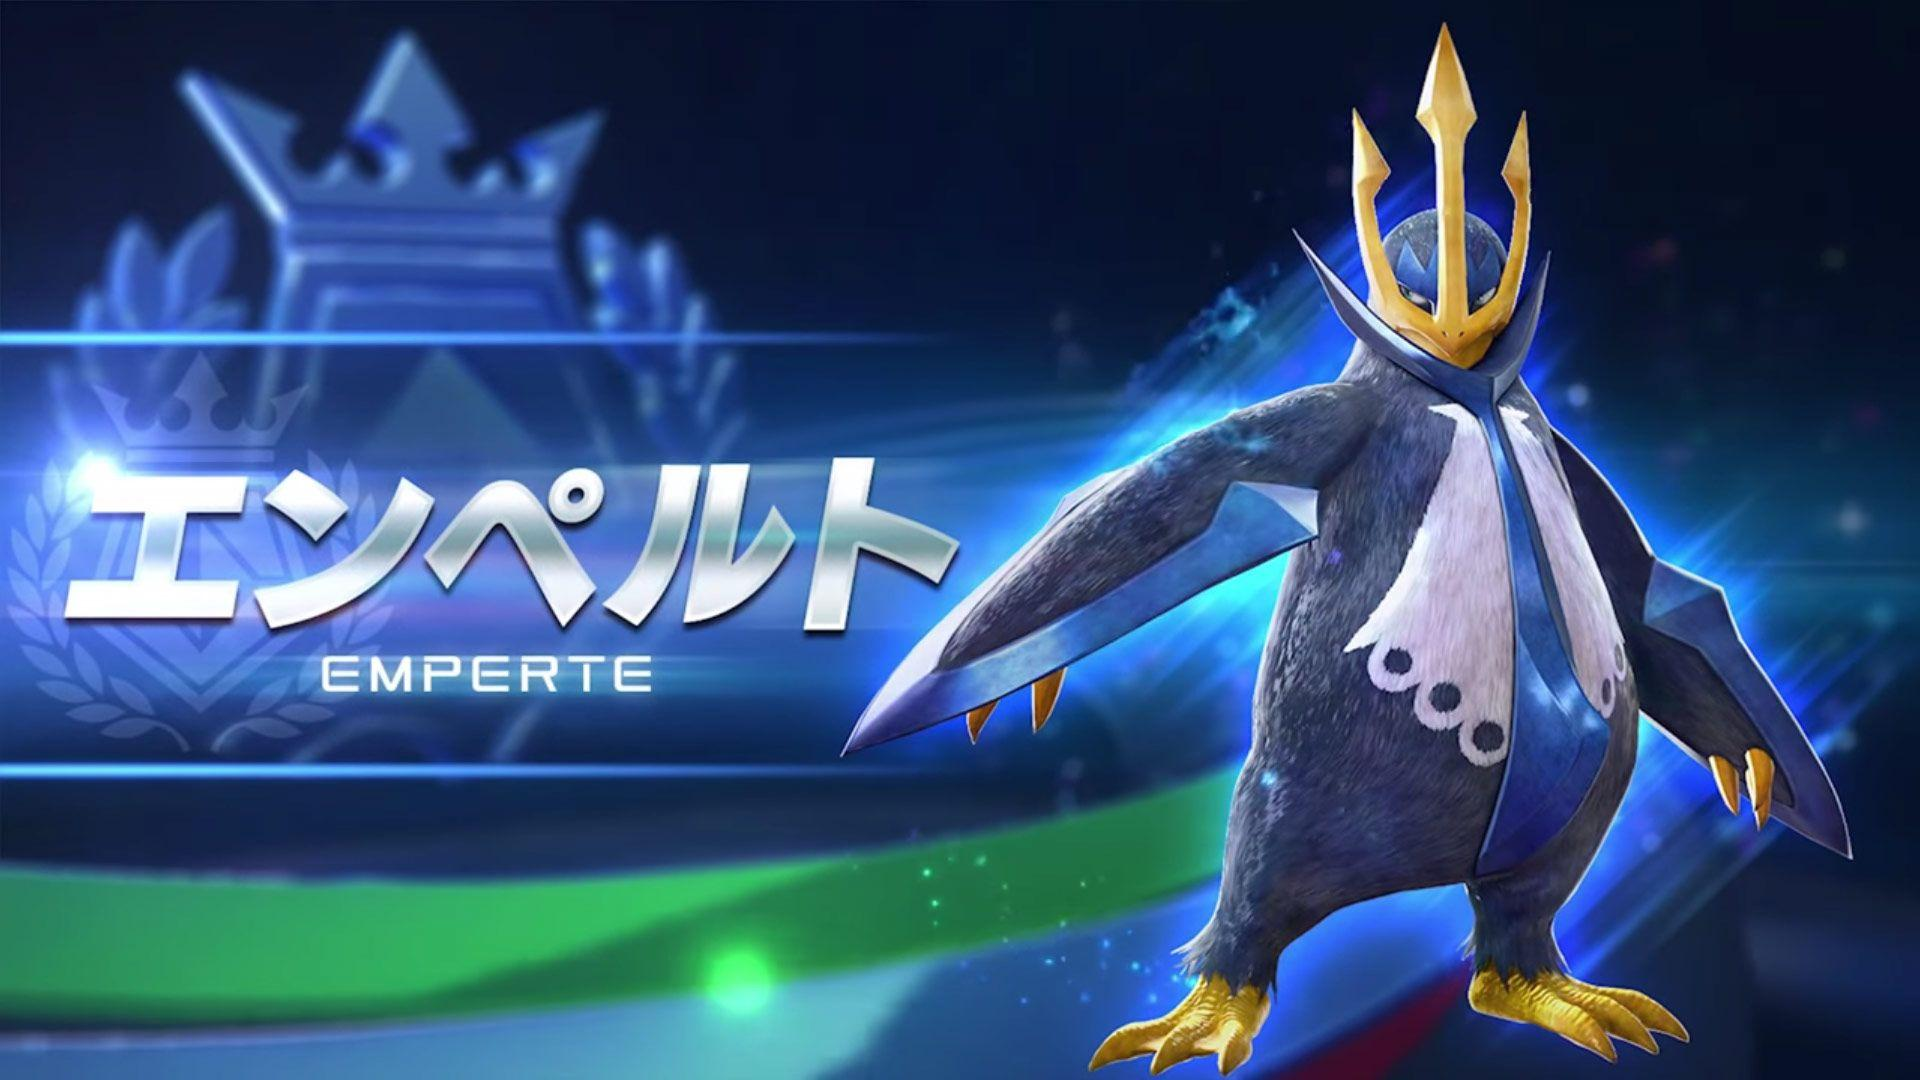 Pokkén Tournament Empoleon Trailer 3 out of 6 image gallery